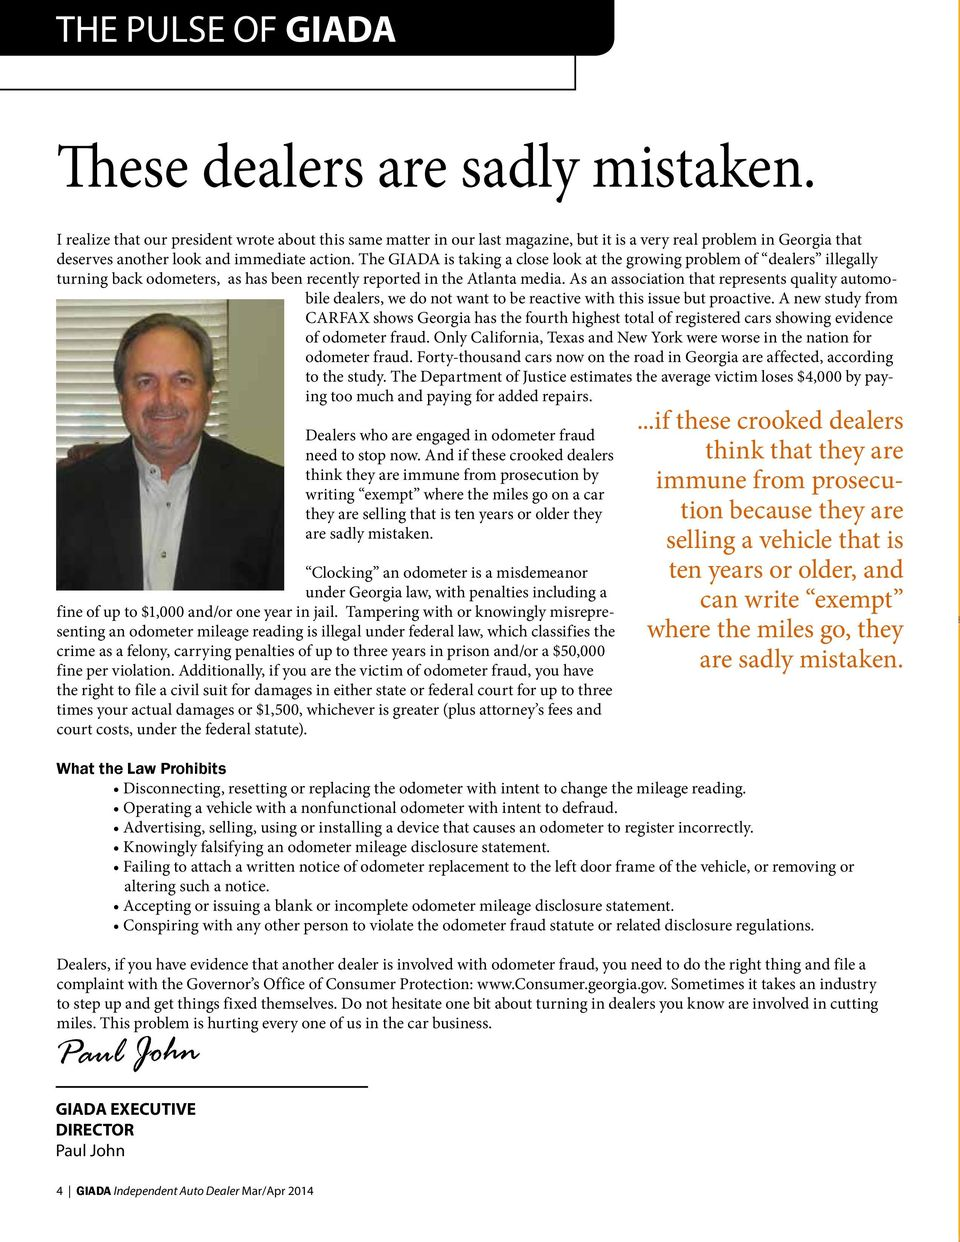 The GIADA is taking a close look at the growing problem of dealers illegally turning back odometers, as has been recently reported in the Atlanta media.